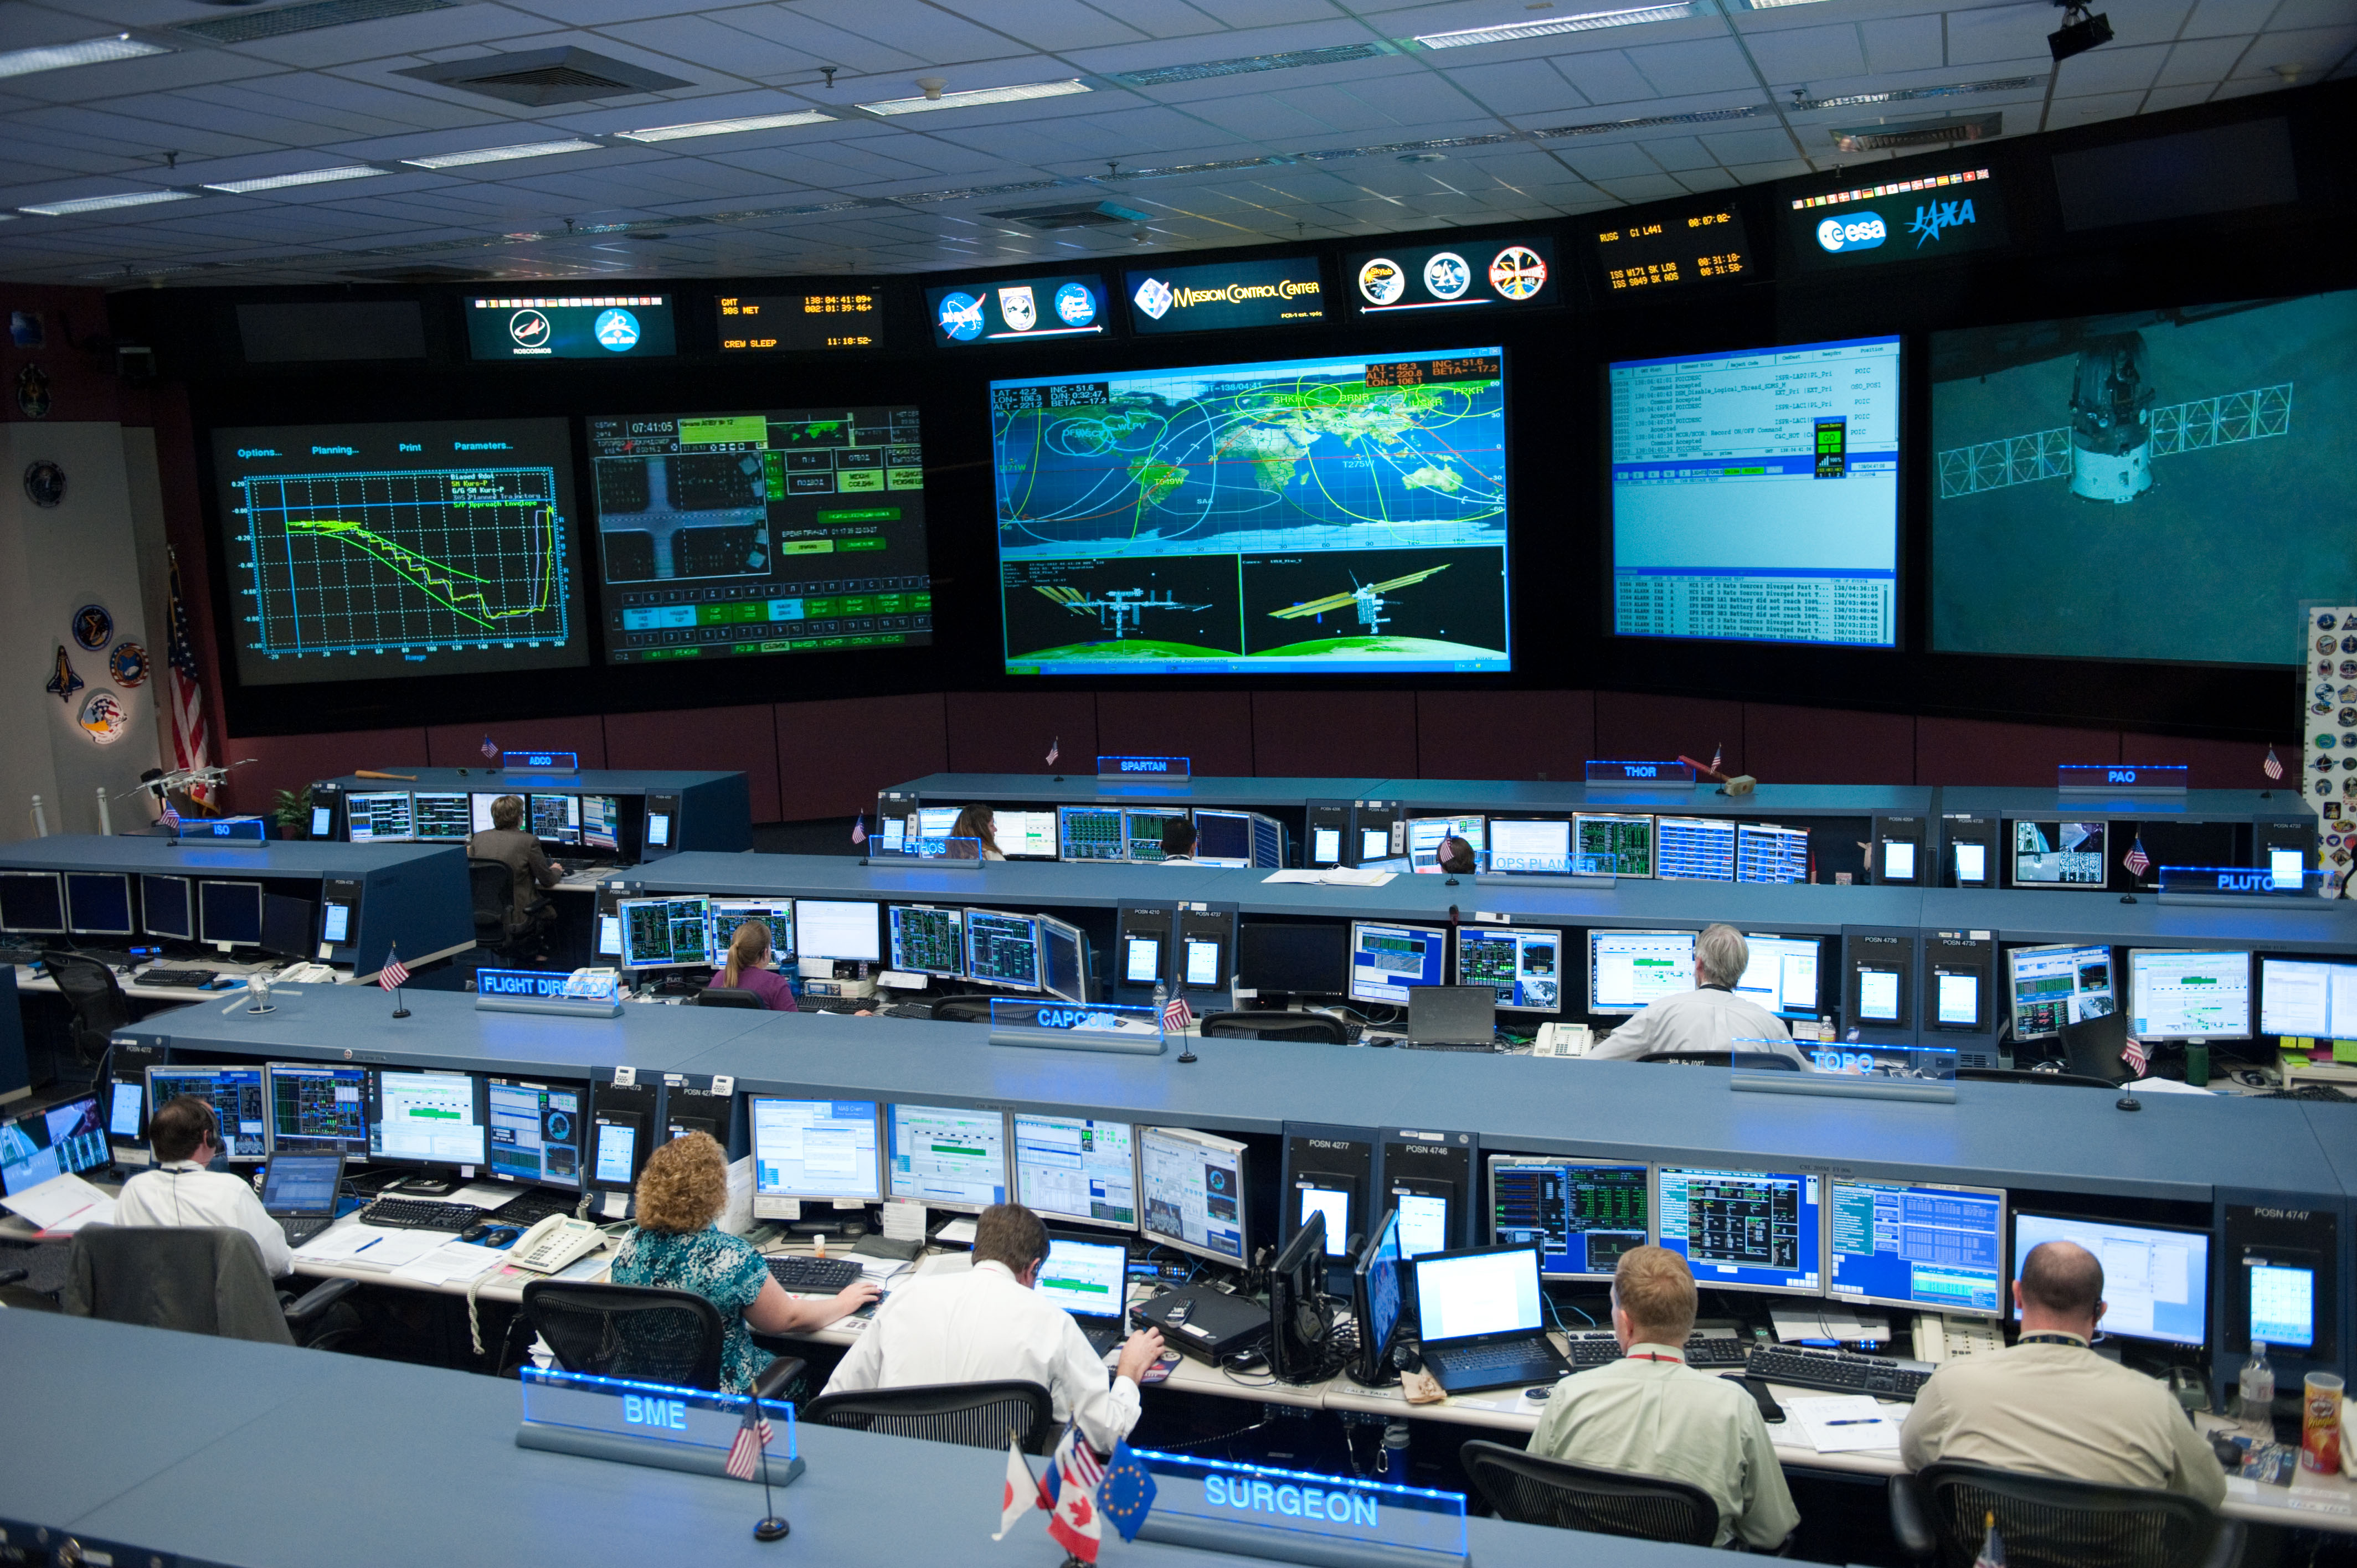 Nasa Space Station Flight Control Room